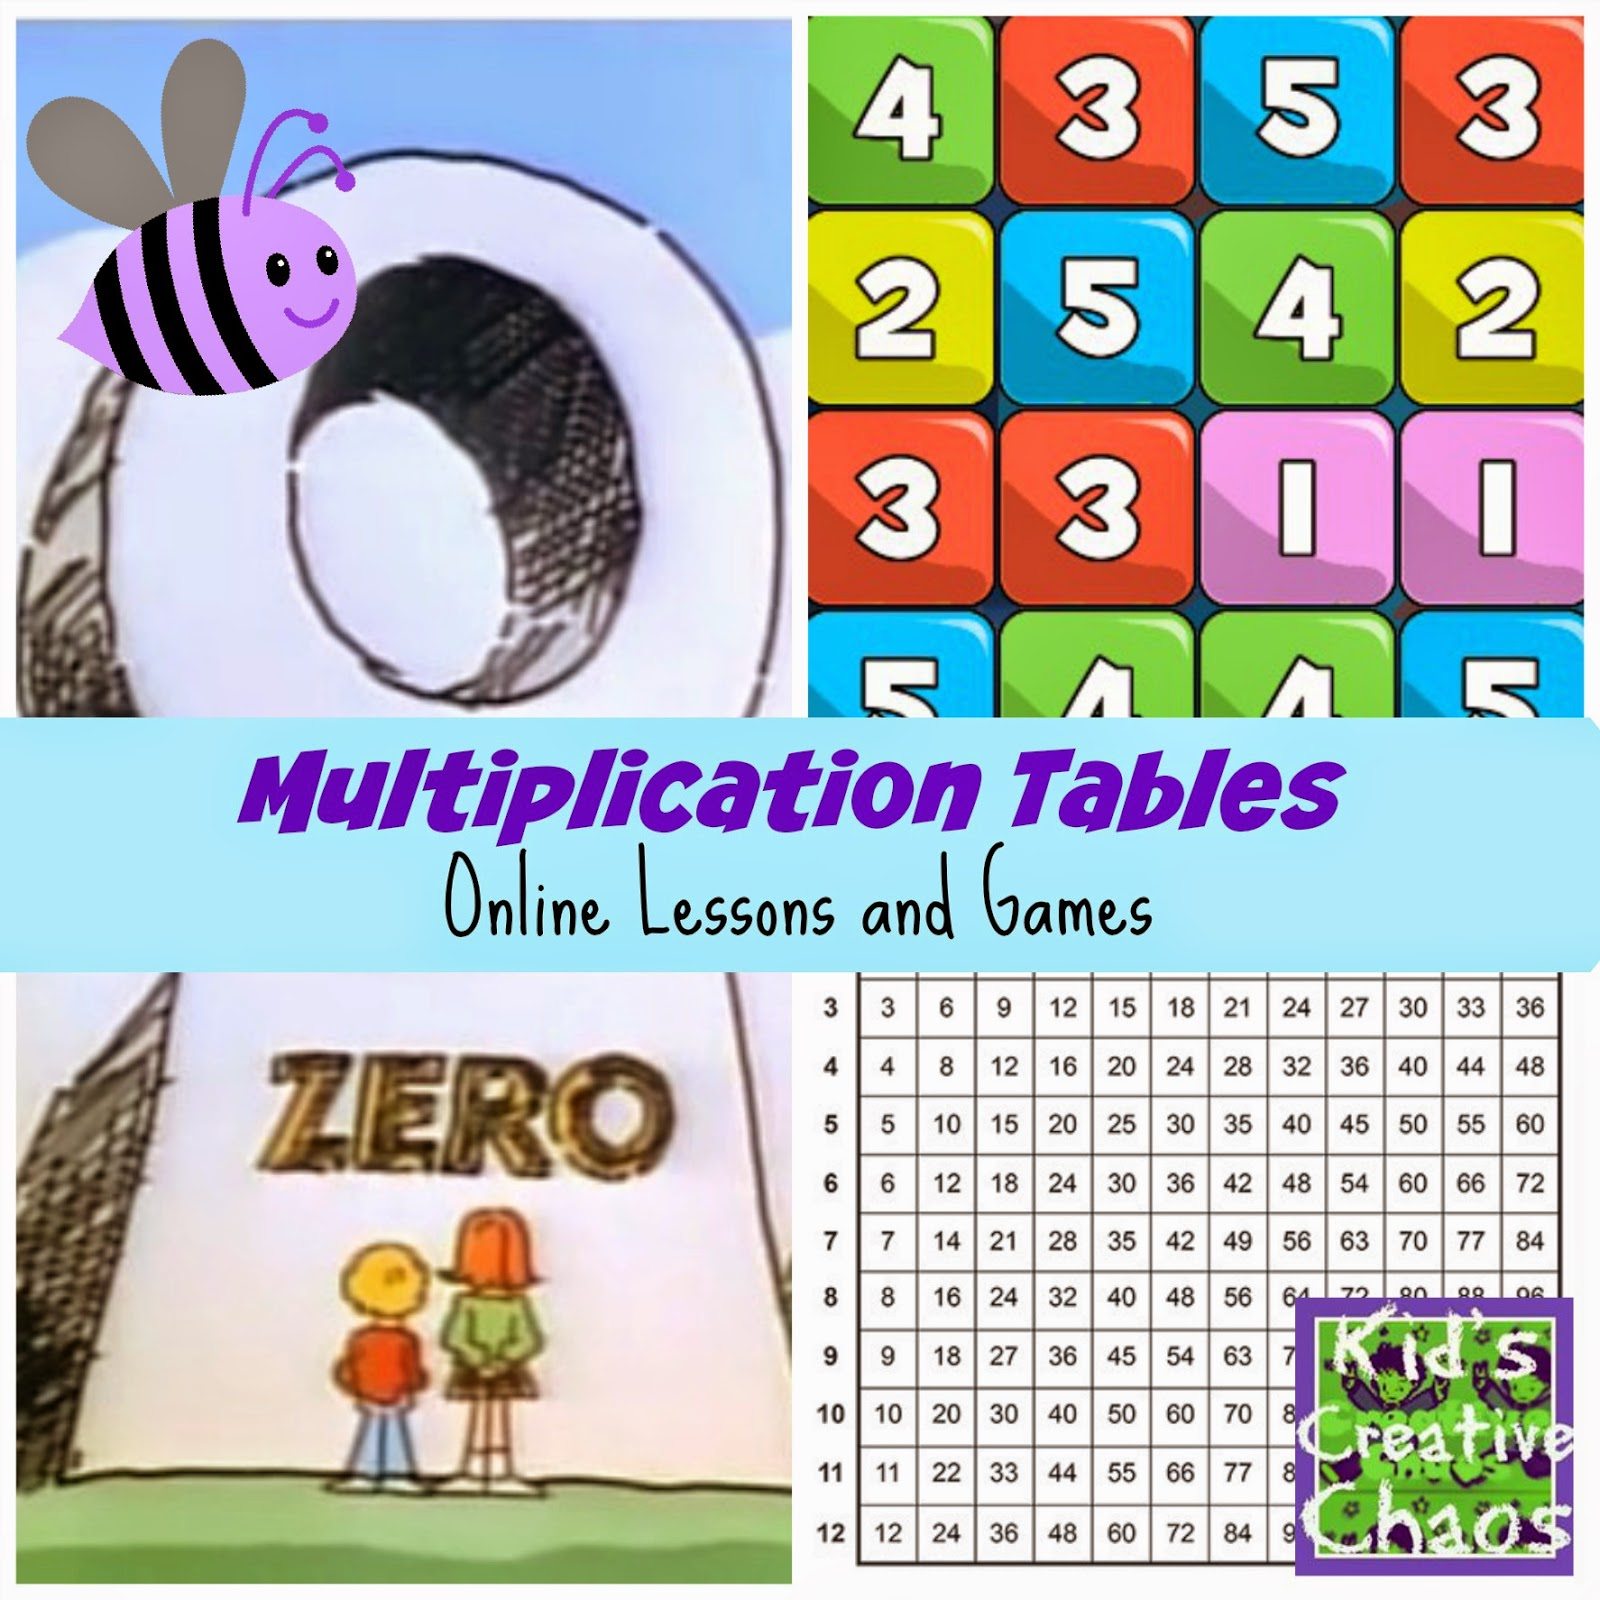 Learn Multiplication Tables Online Free Homeschooling